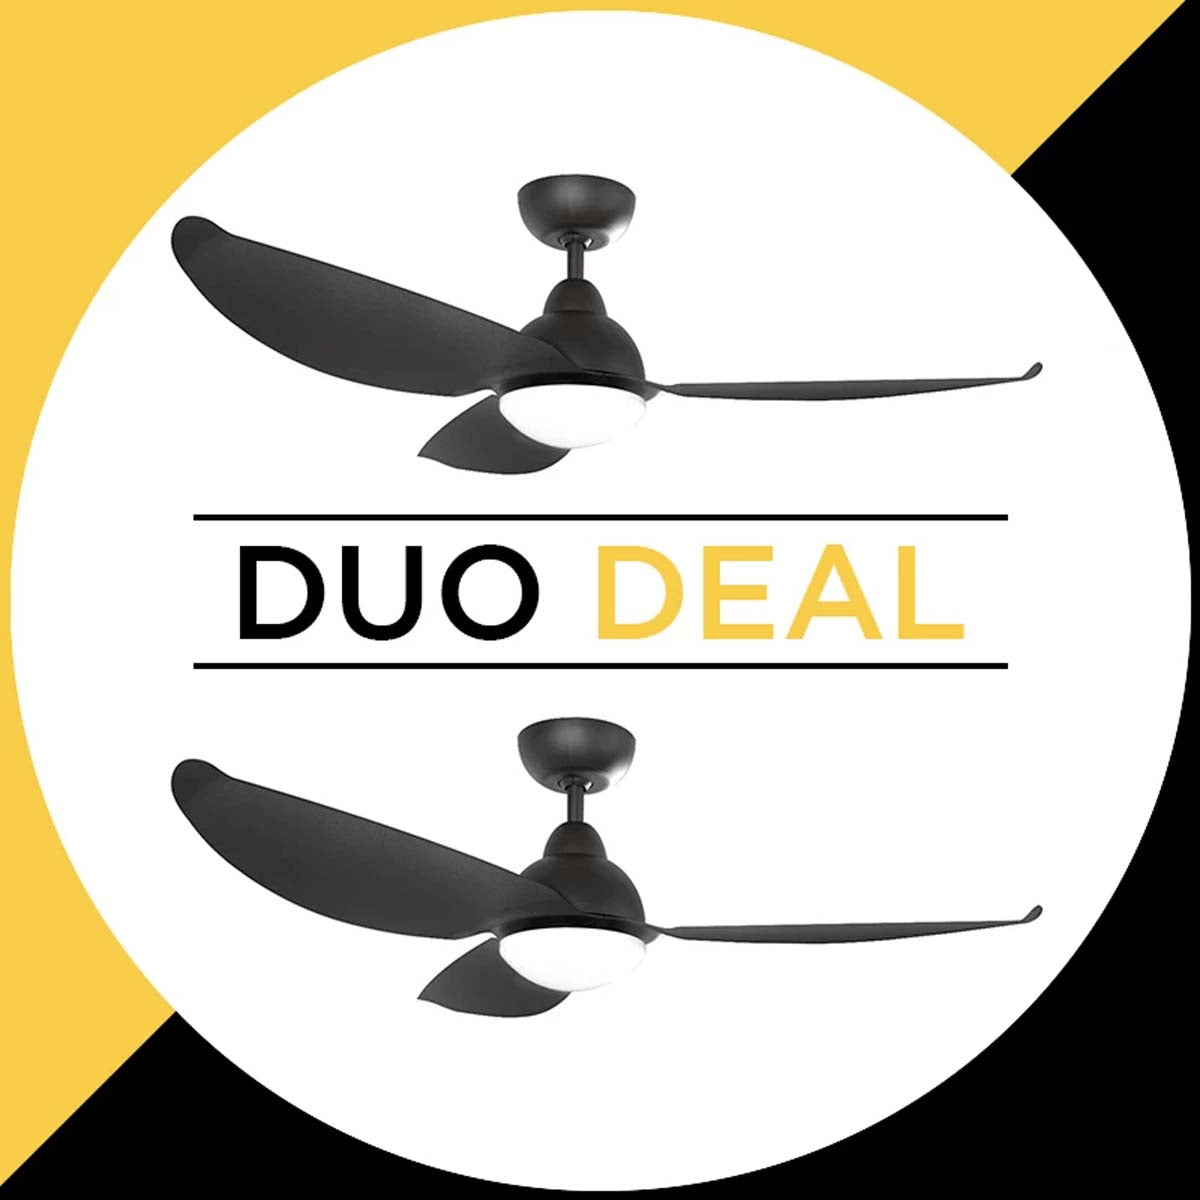 "Alaska Ceiling Fan Pearl II 46"" Solid Colour Duo Deal"